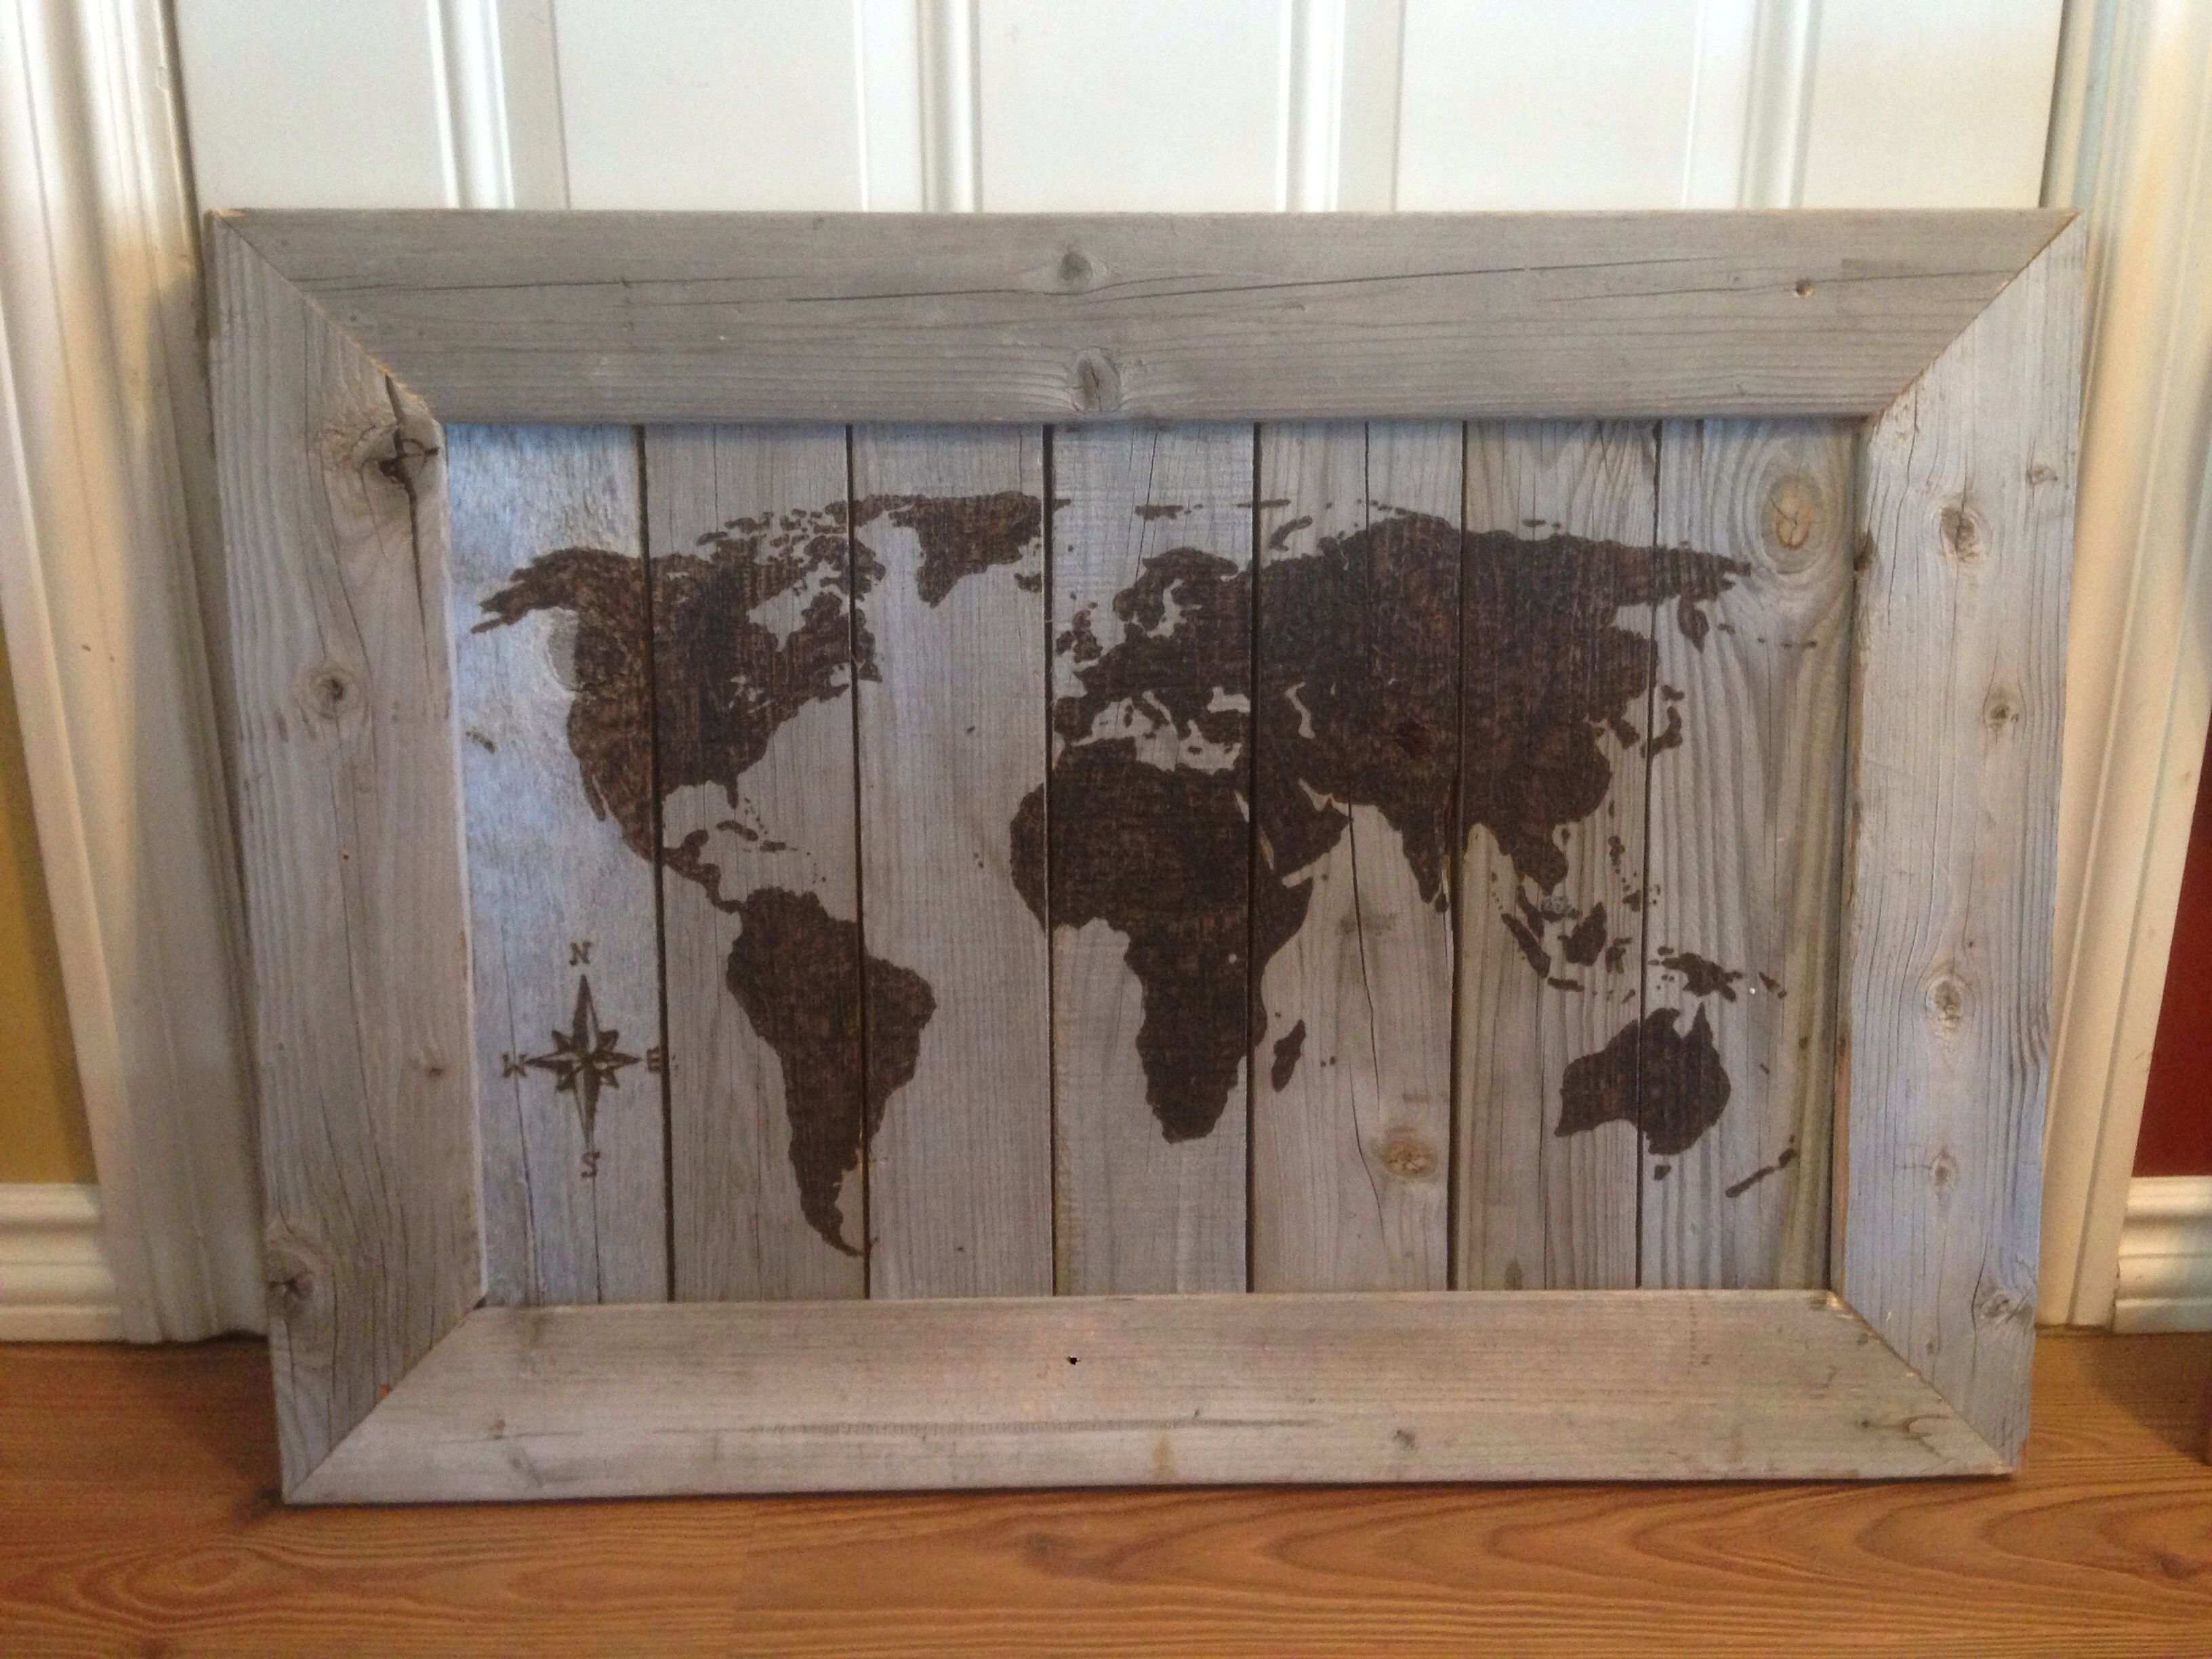 Wood burnt world map onto old pallet wood made the frame out of wood burnt world map onto old pallet wood made the frame out of old 2x4s jeuxipadfo Gallery